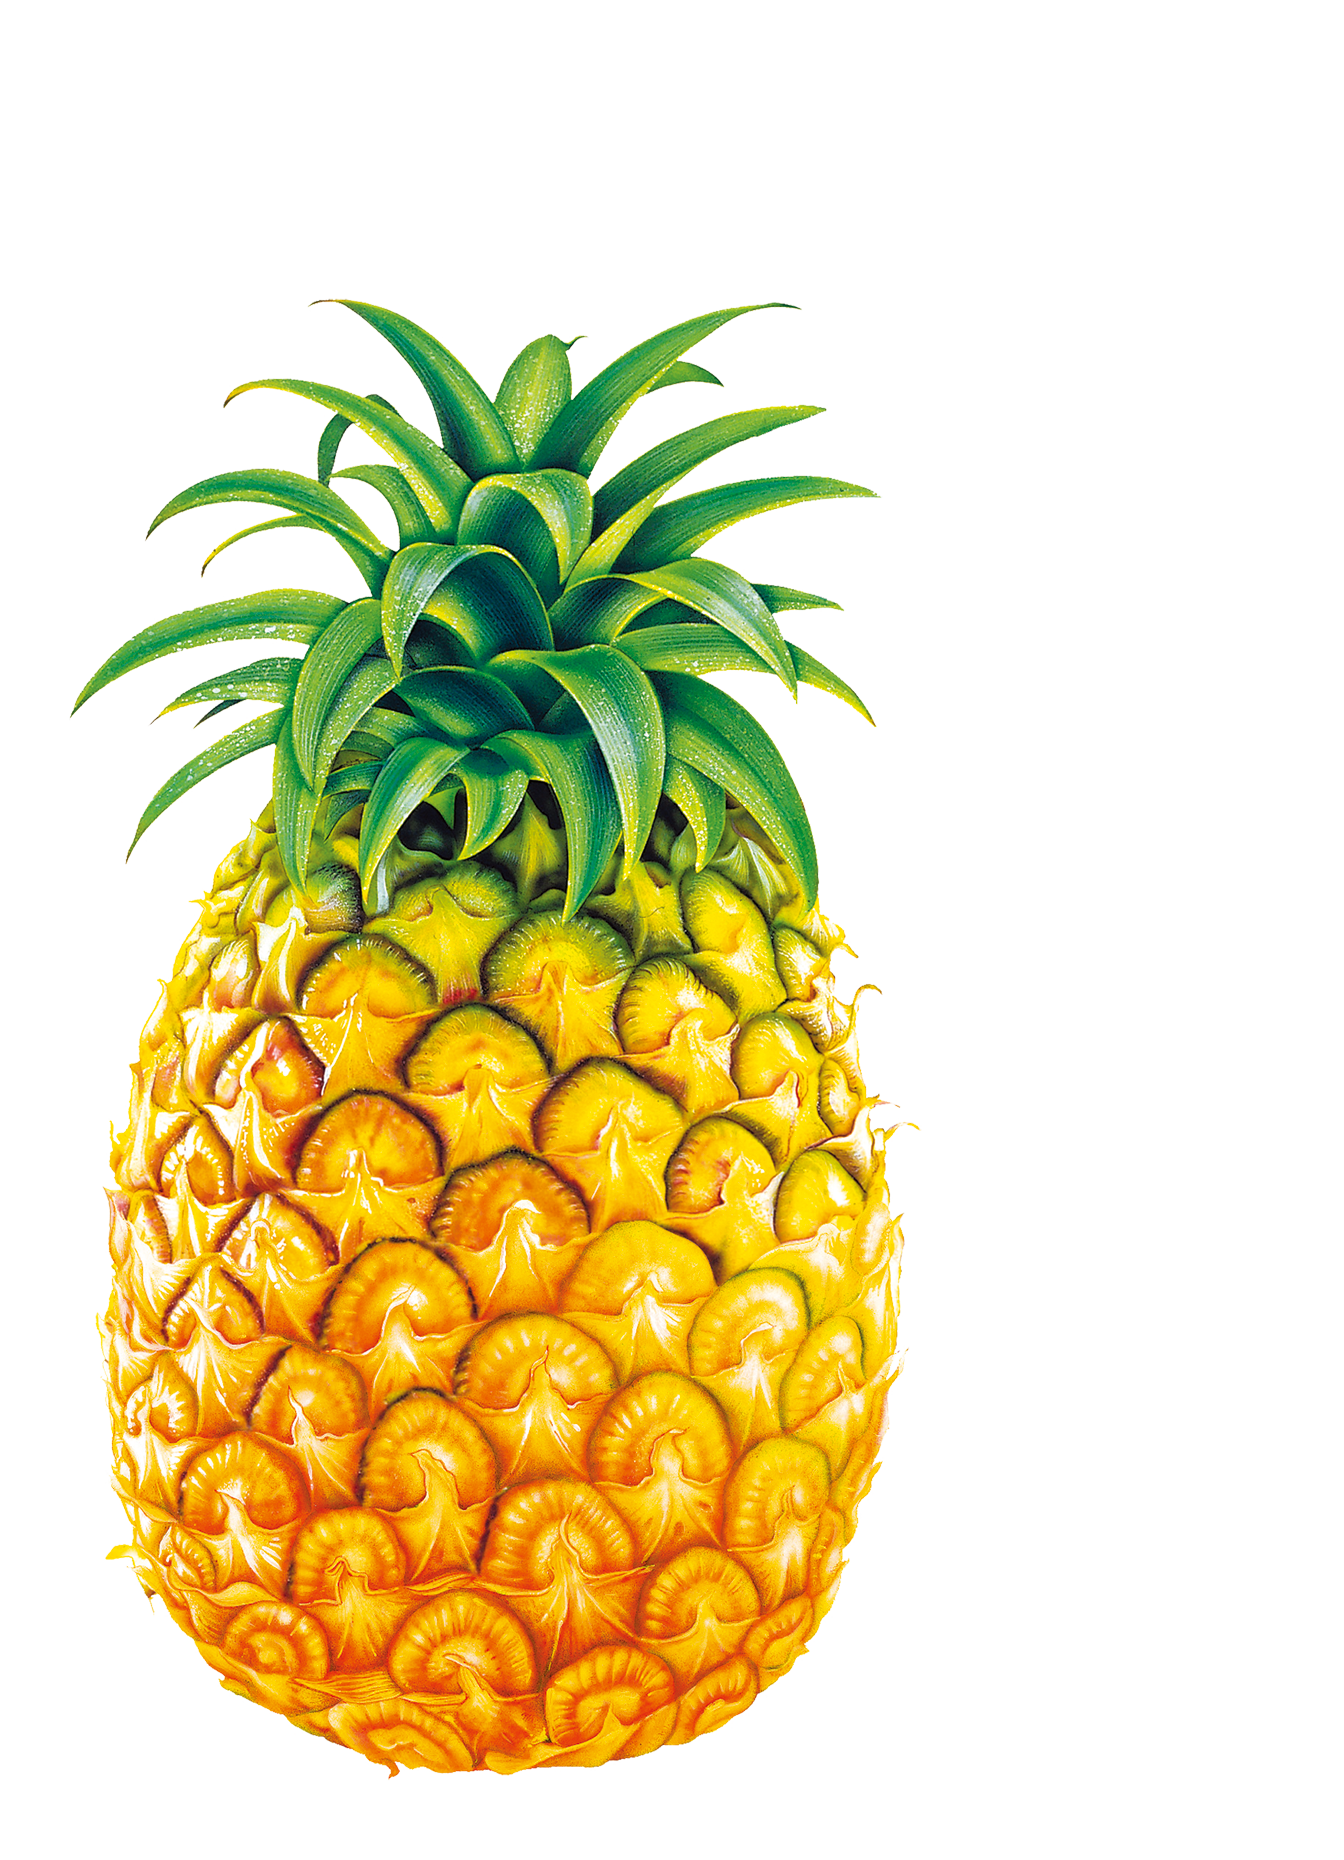 Pear clipart pineapple. Juice fruit bromelain clip